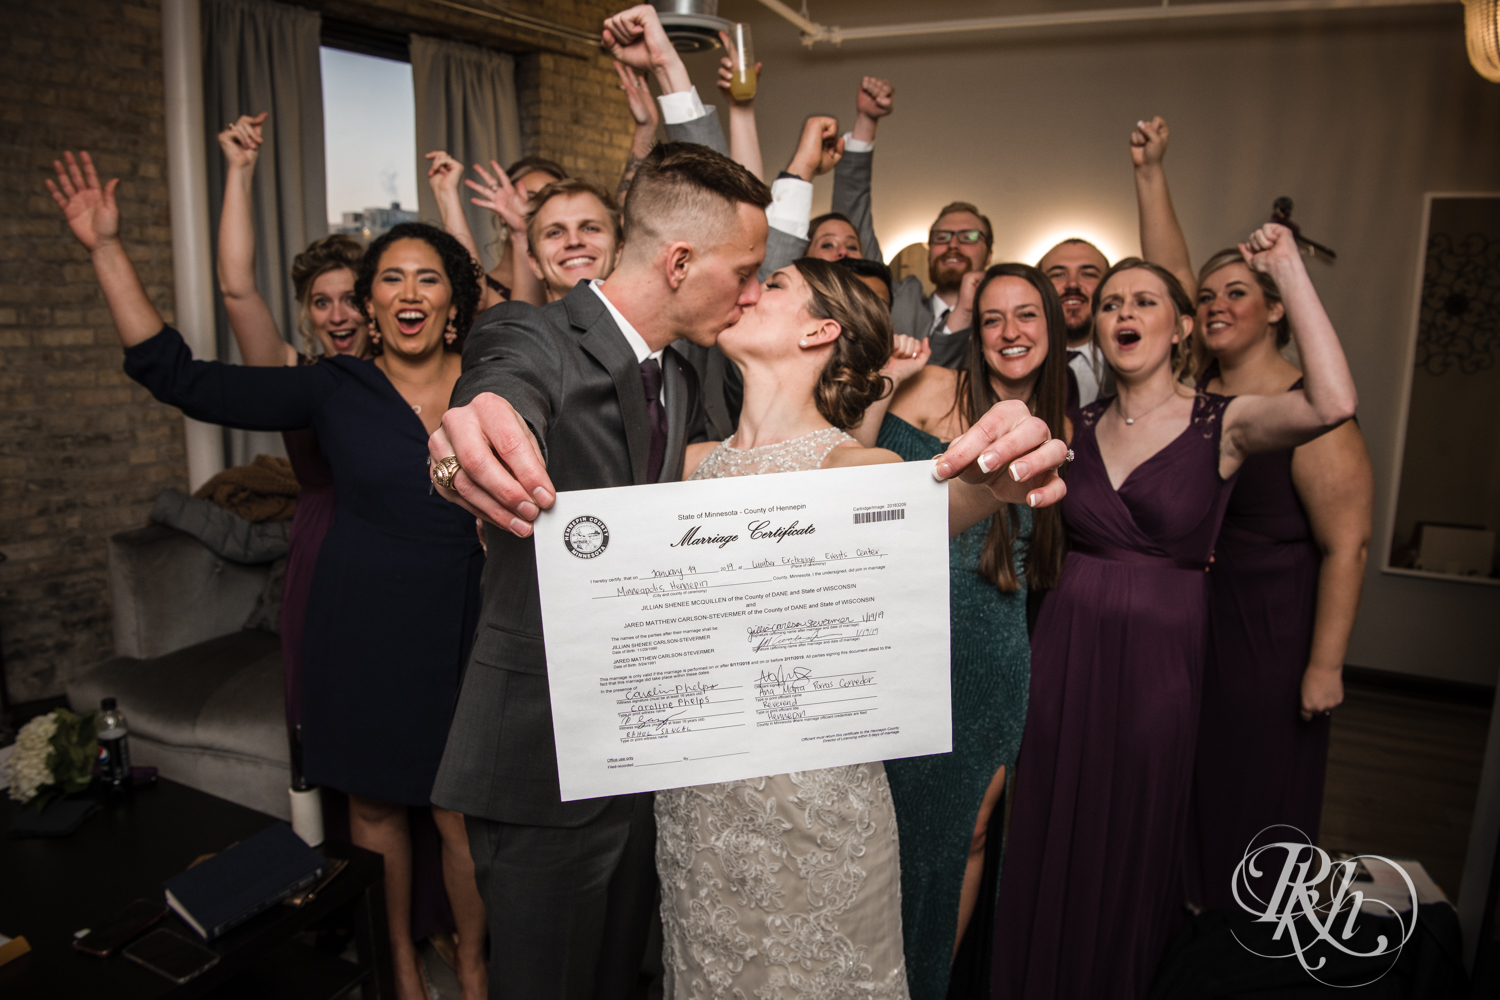 Jillian & Jared - Minnesota Wedding Photography - Lumber Exchange Event Center - RKH Images - Blog (50 of 87).jpg